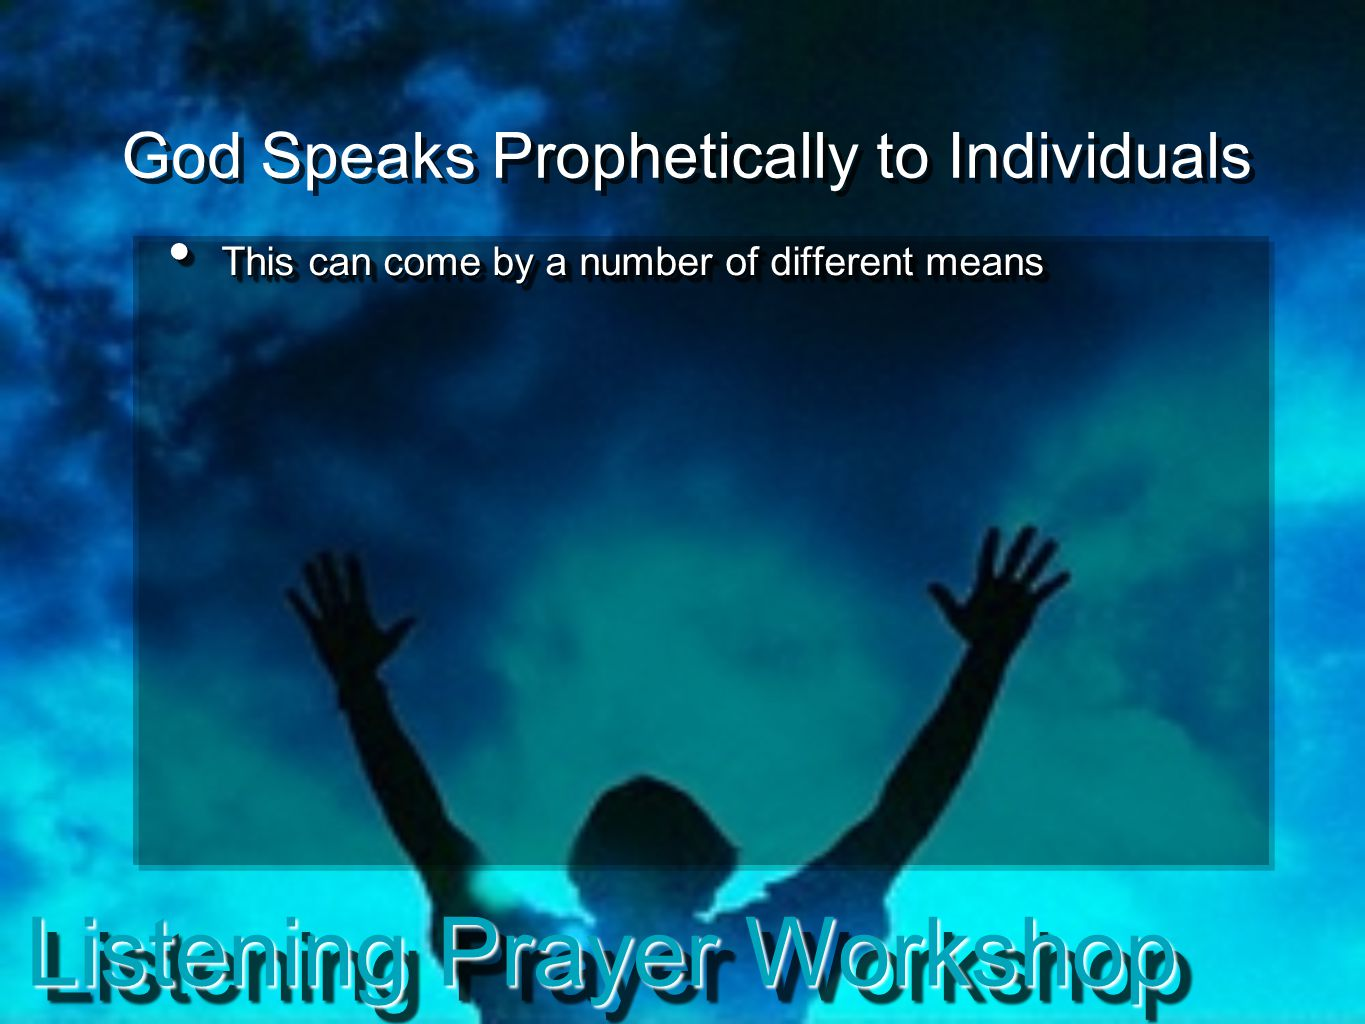 Listening Prayer Workshop God Speaks Prophetically to Individuals This can come by a number of different means This can come by a number of different